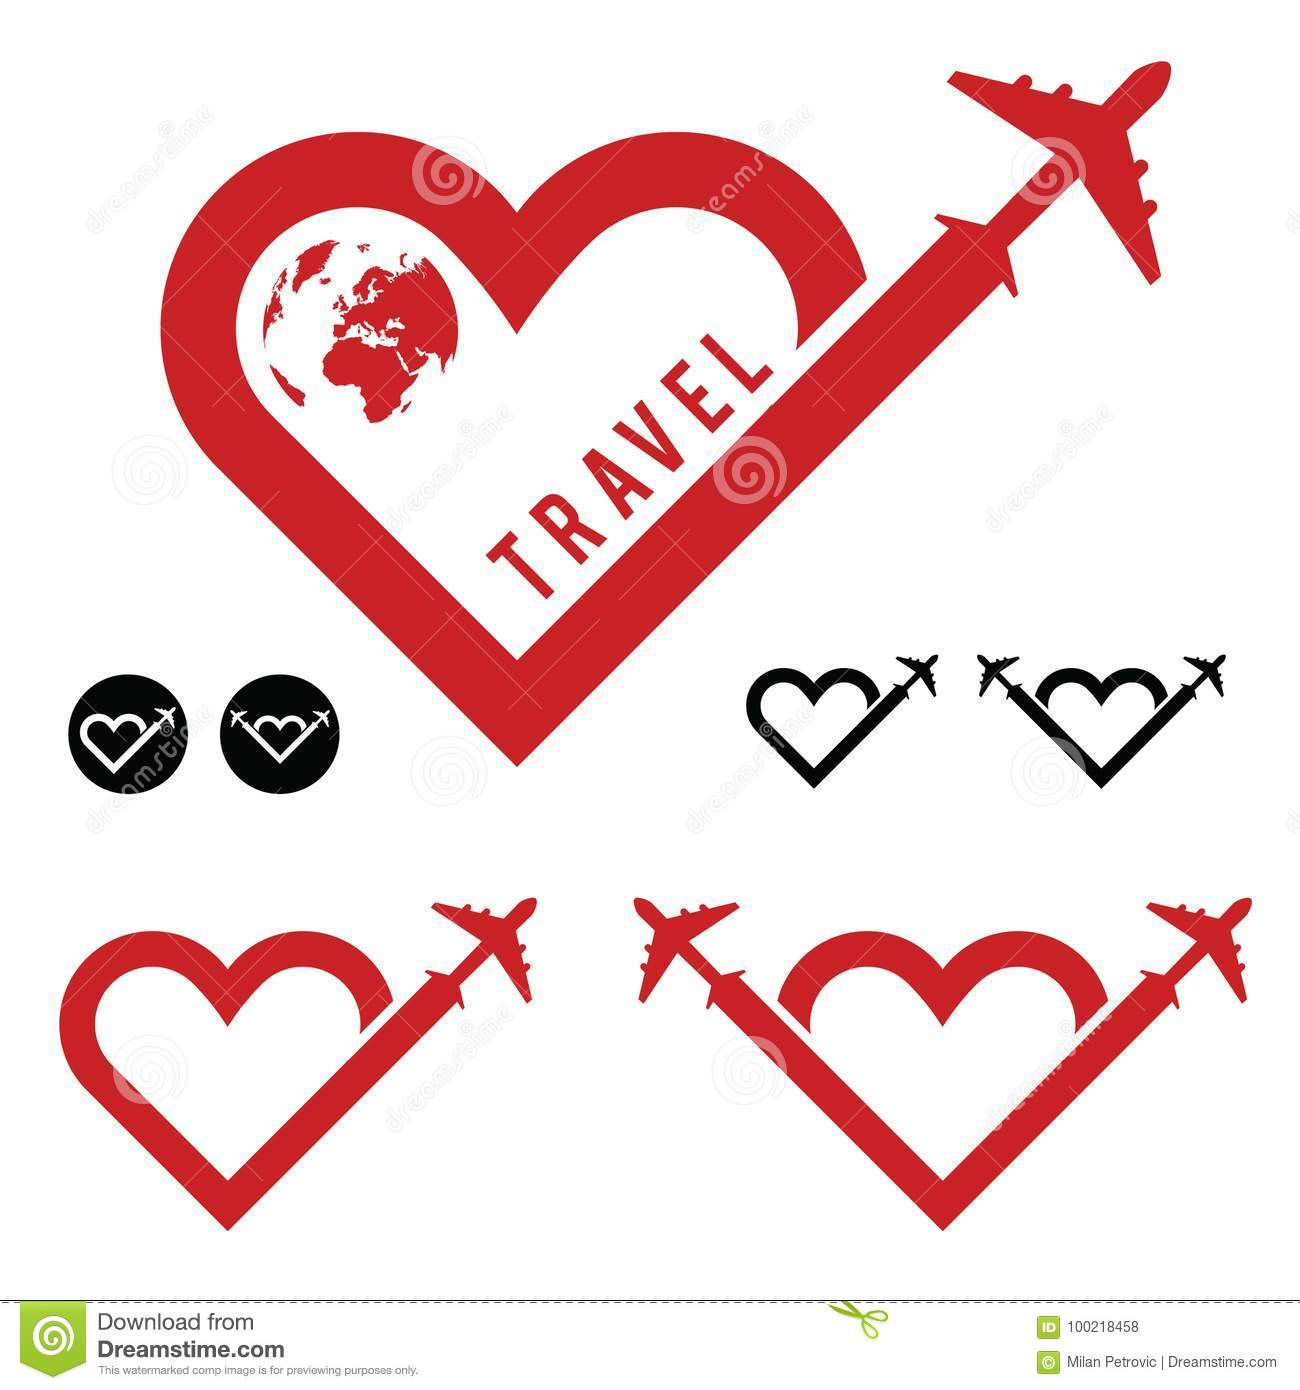 Travel love in heart icon set illustration